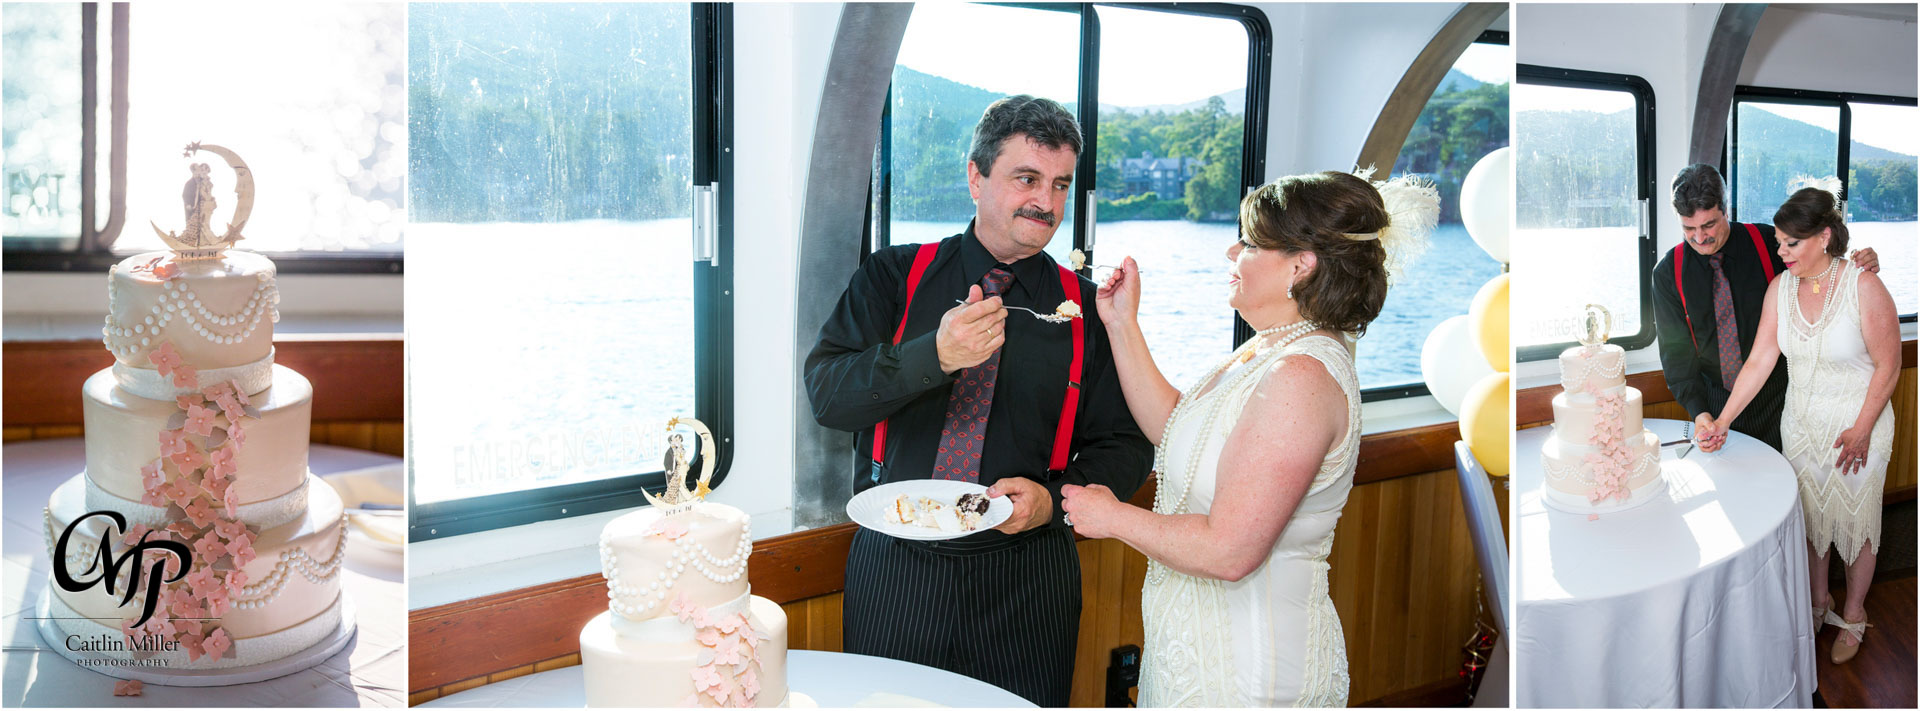 bombard-28.jpg from Jan and Robert's vow renewal on shoreline Cruise's Adirondac Boat on Lake George, NY by Saratoga Wedding Photographer Caitlin Miller Photography. Lake George Wedding Photographer. Stamford wedding photographer. Albany wedding photographer. Shoreline Cruises Wedding Photographer. Saratoga Wedding Photographer